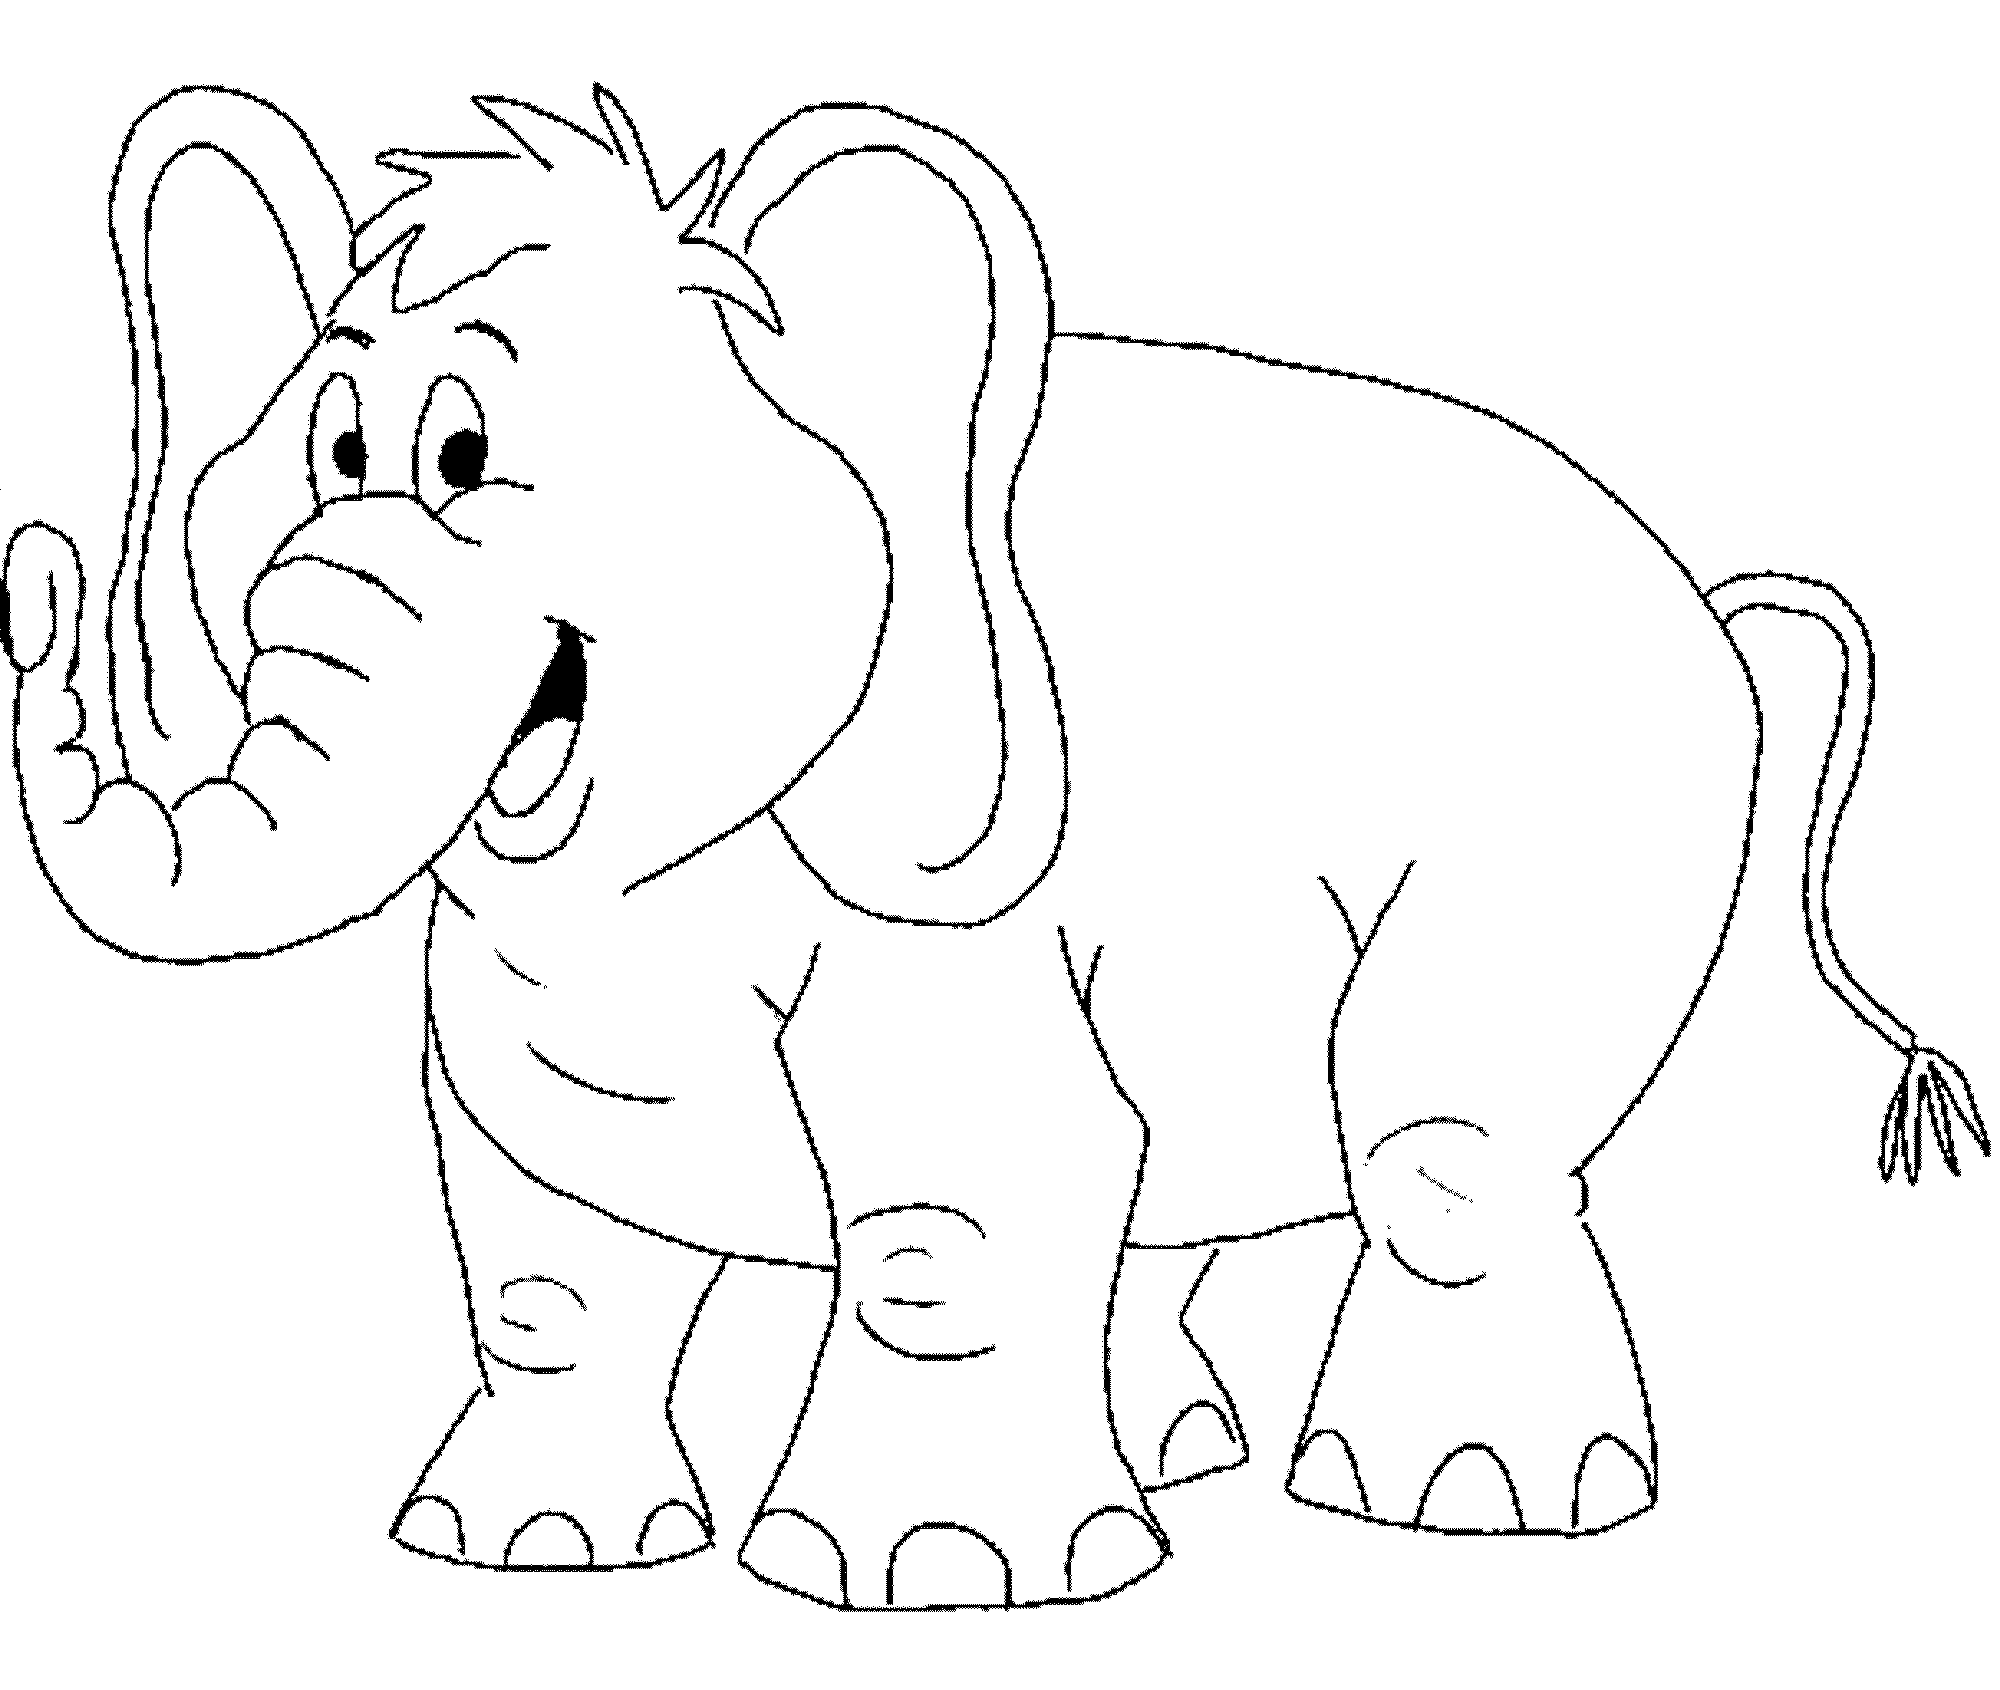 colouring pages of elephant elephant free coloring book printables popsugar smart colouring of pages elephant